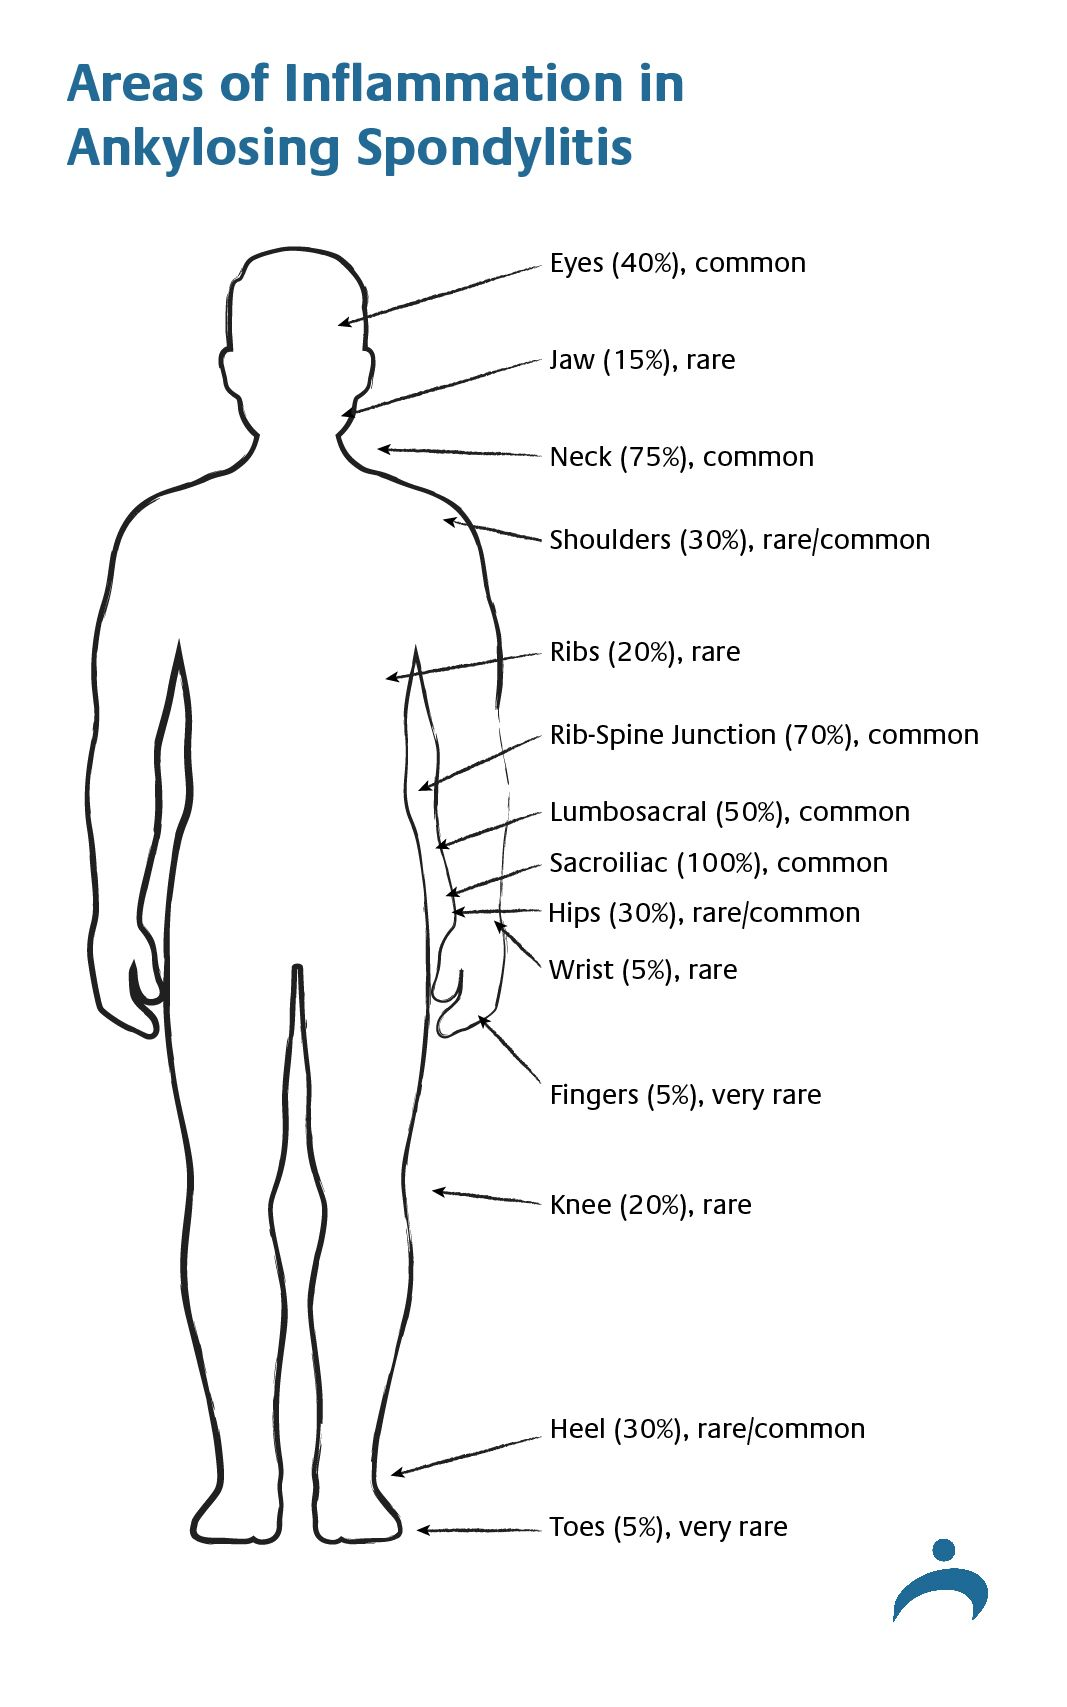 hight resolution of areas of inflammation in ankylosing spondylitis diagram